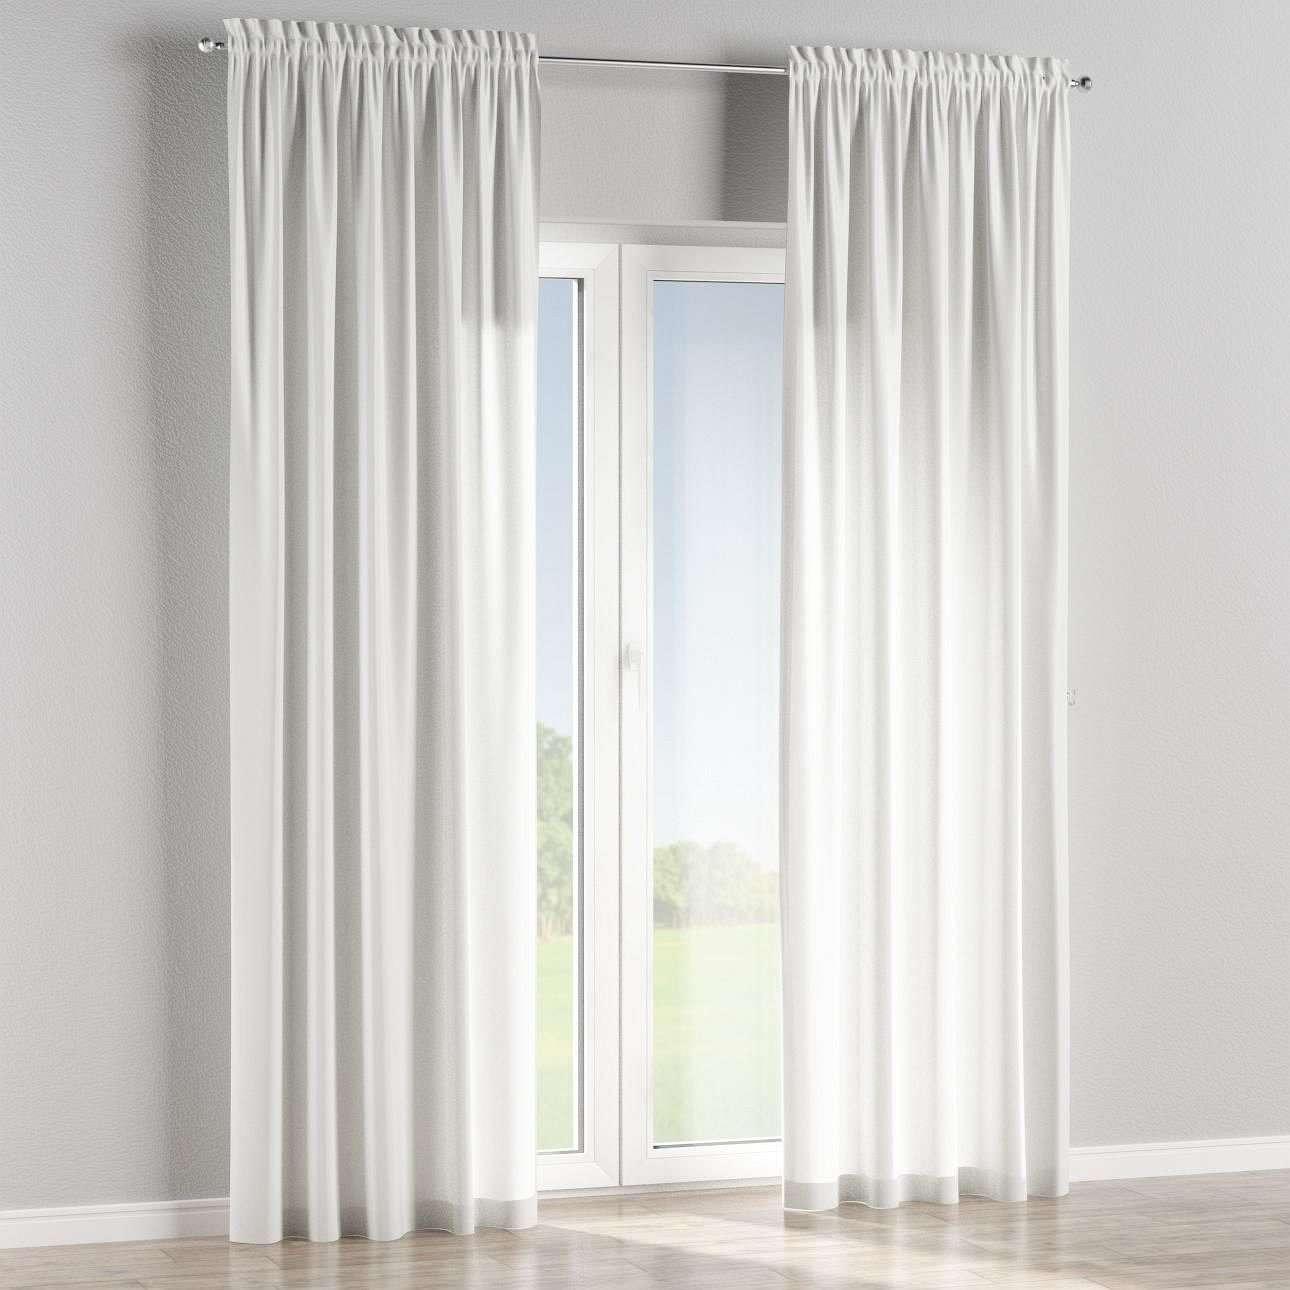 Slot and frill curtains in collection Jupiter, fabric: 127-04